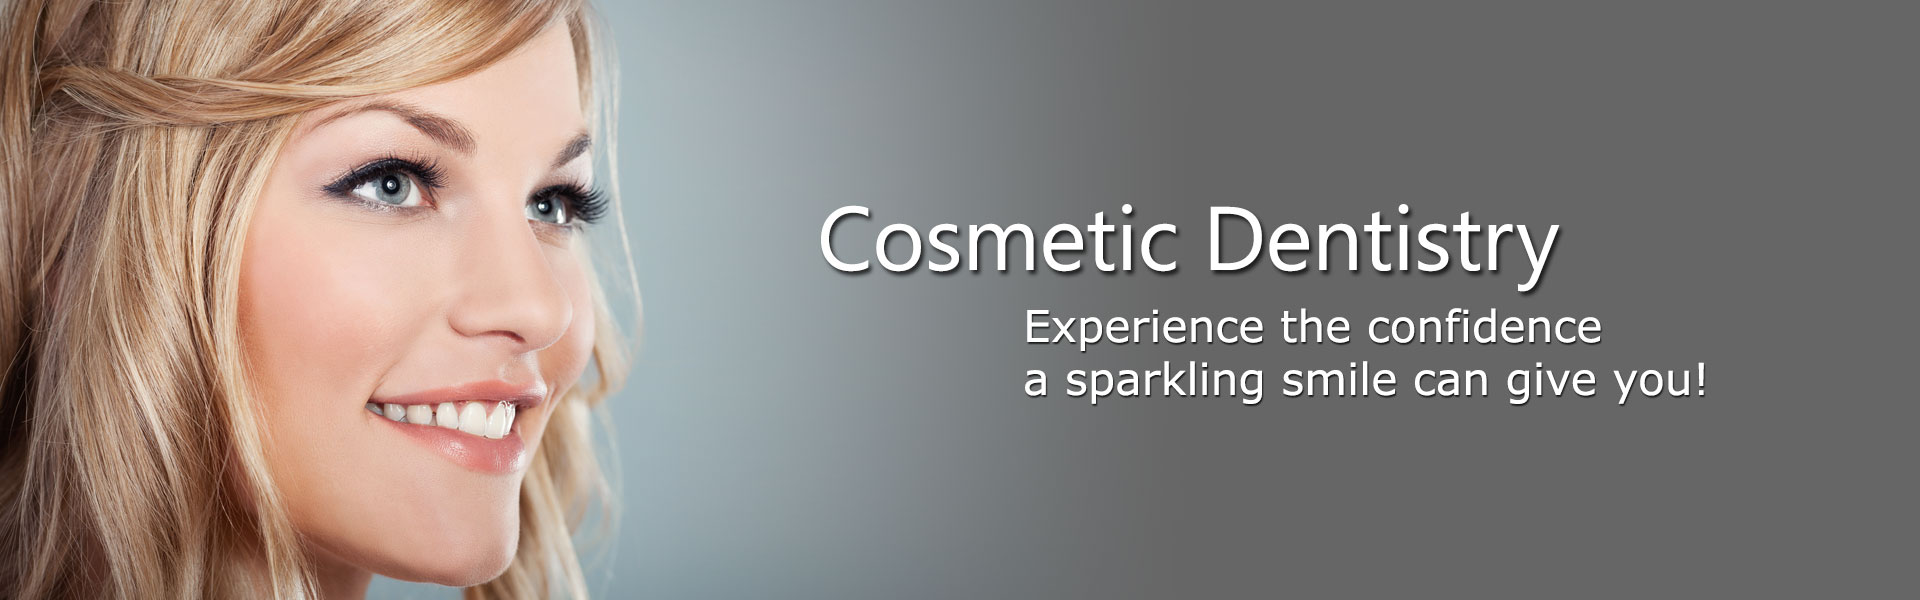 Cosmetic Dentistry - Elgin Area - Caring Cosmetic Dentist in